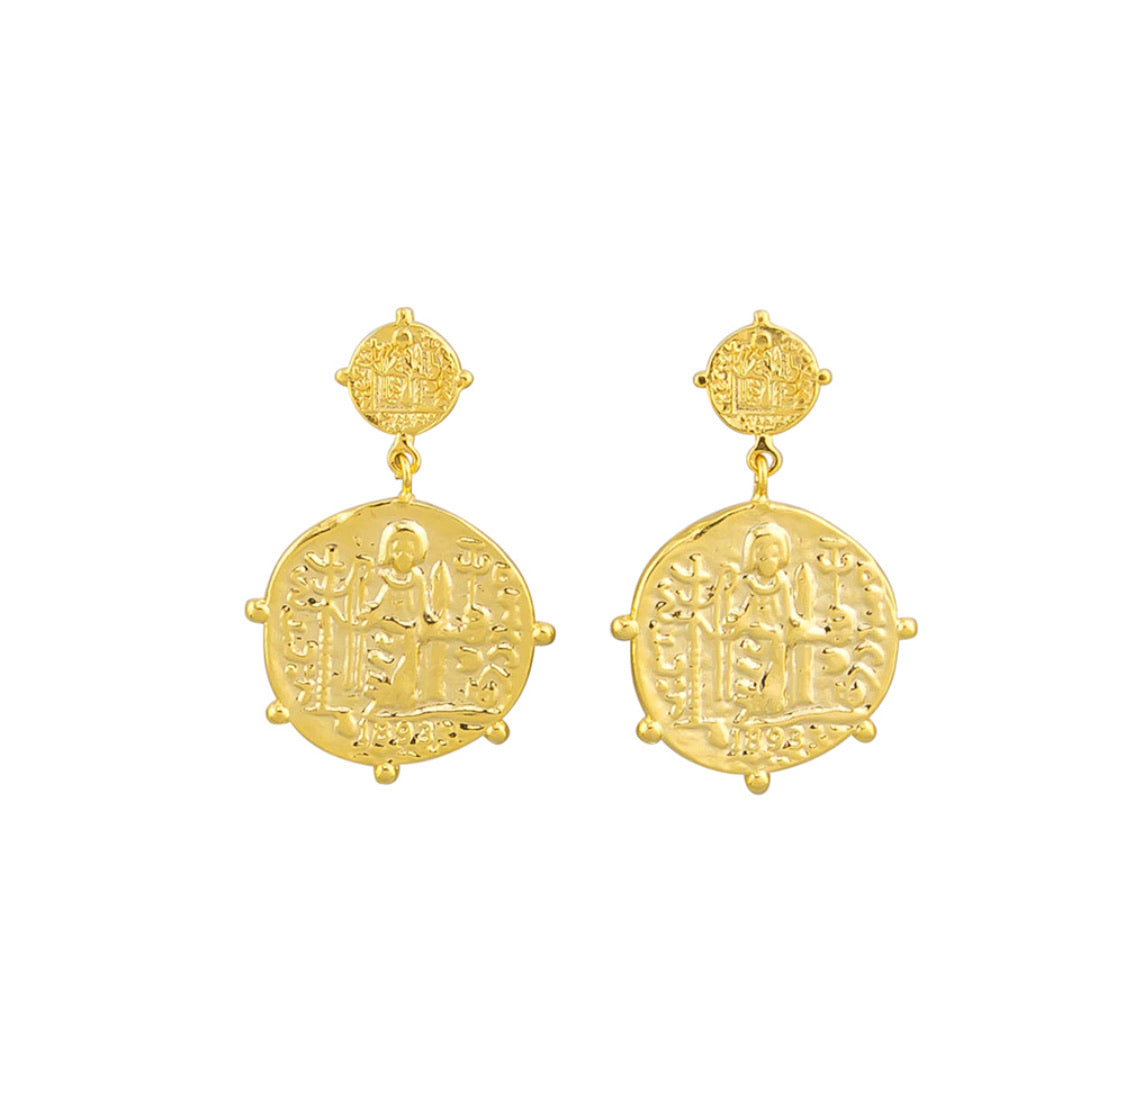 Jolie and Deen Marisa earrings